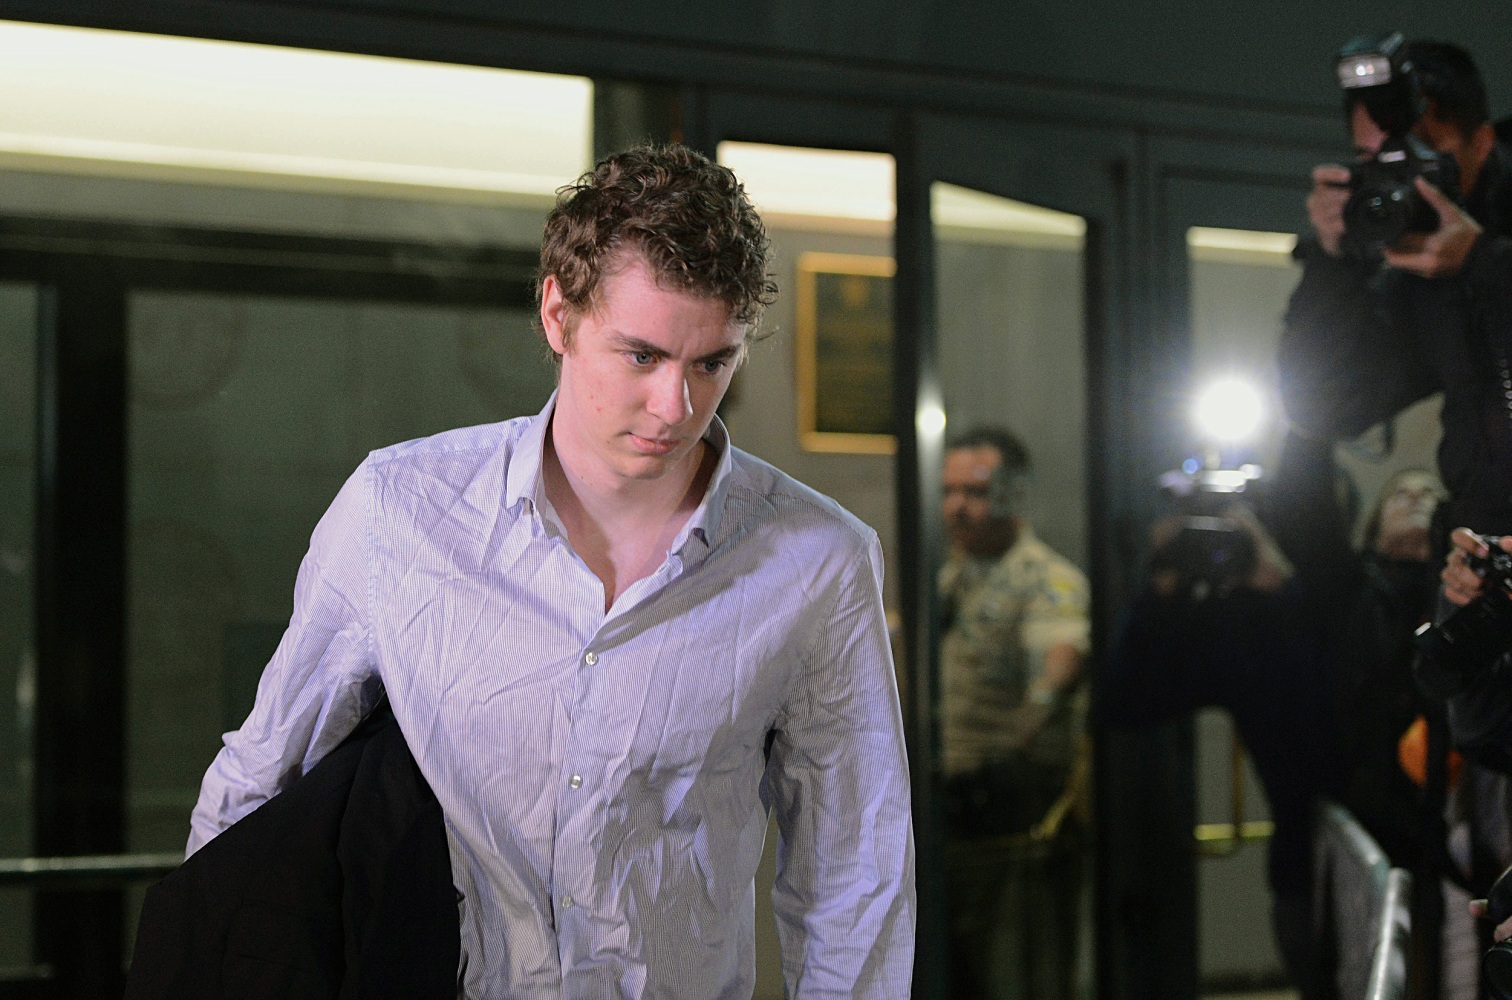 Stanford Rape Case: Brock Turner Seeks Appeal, New Trial